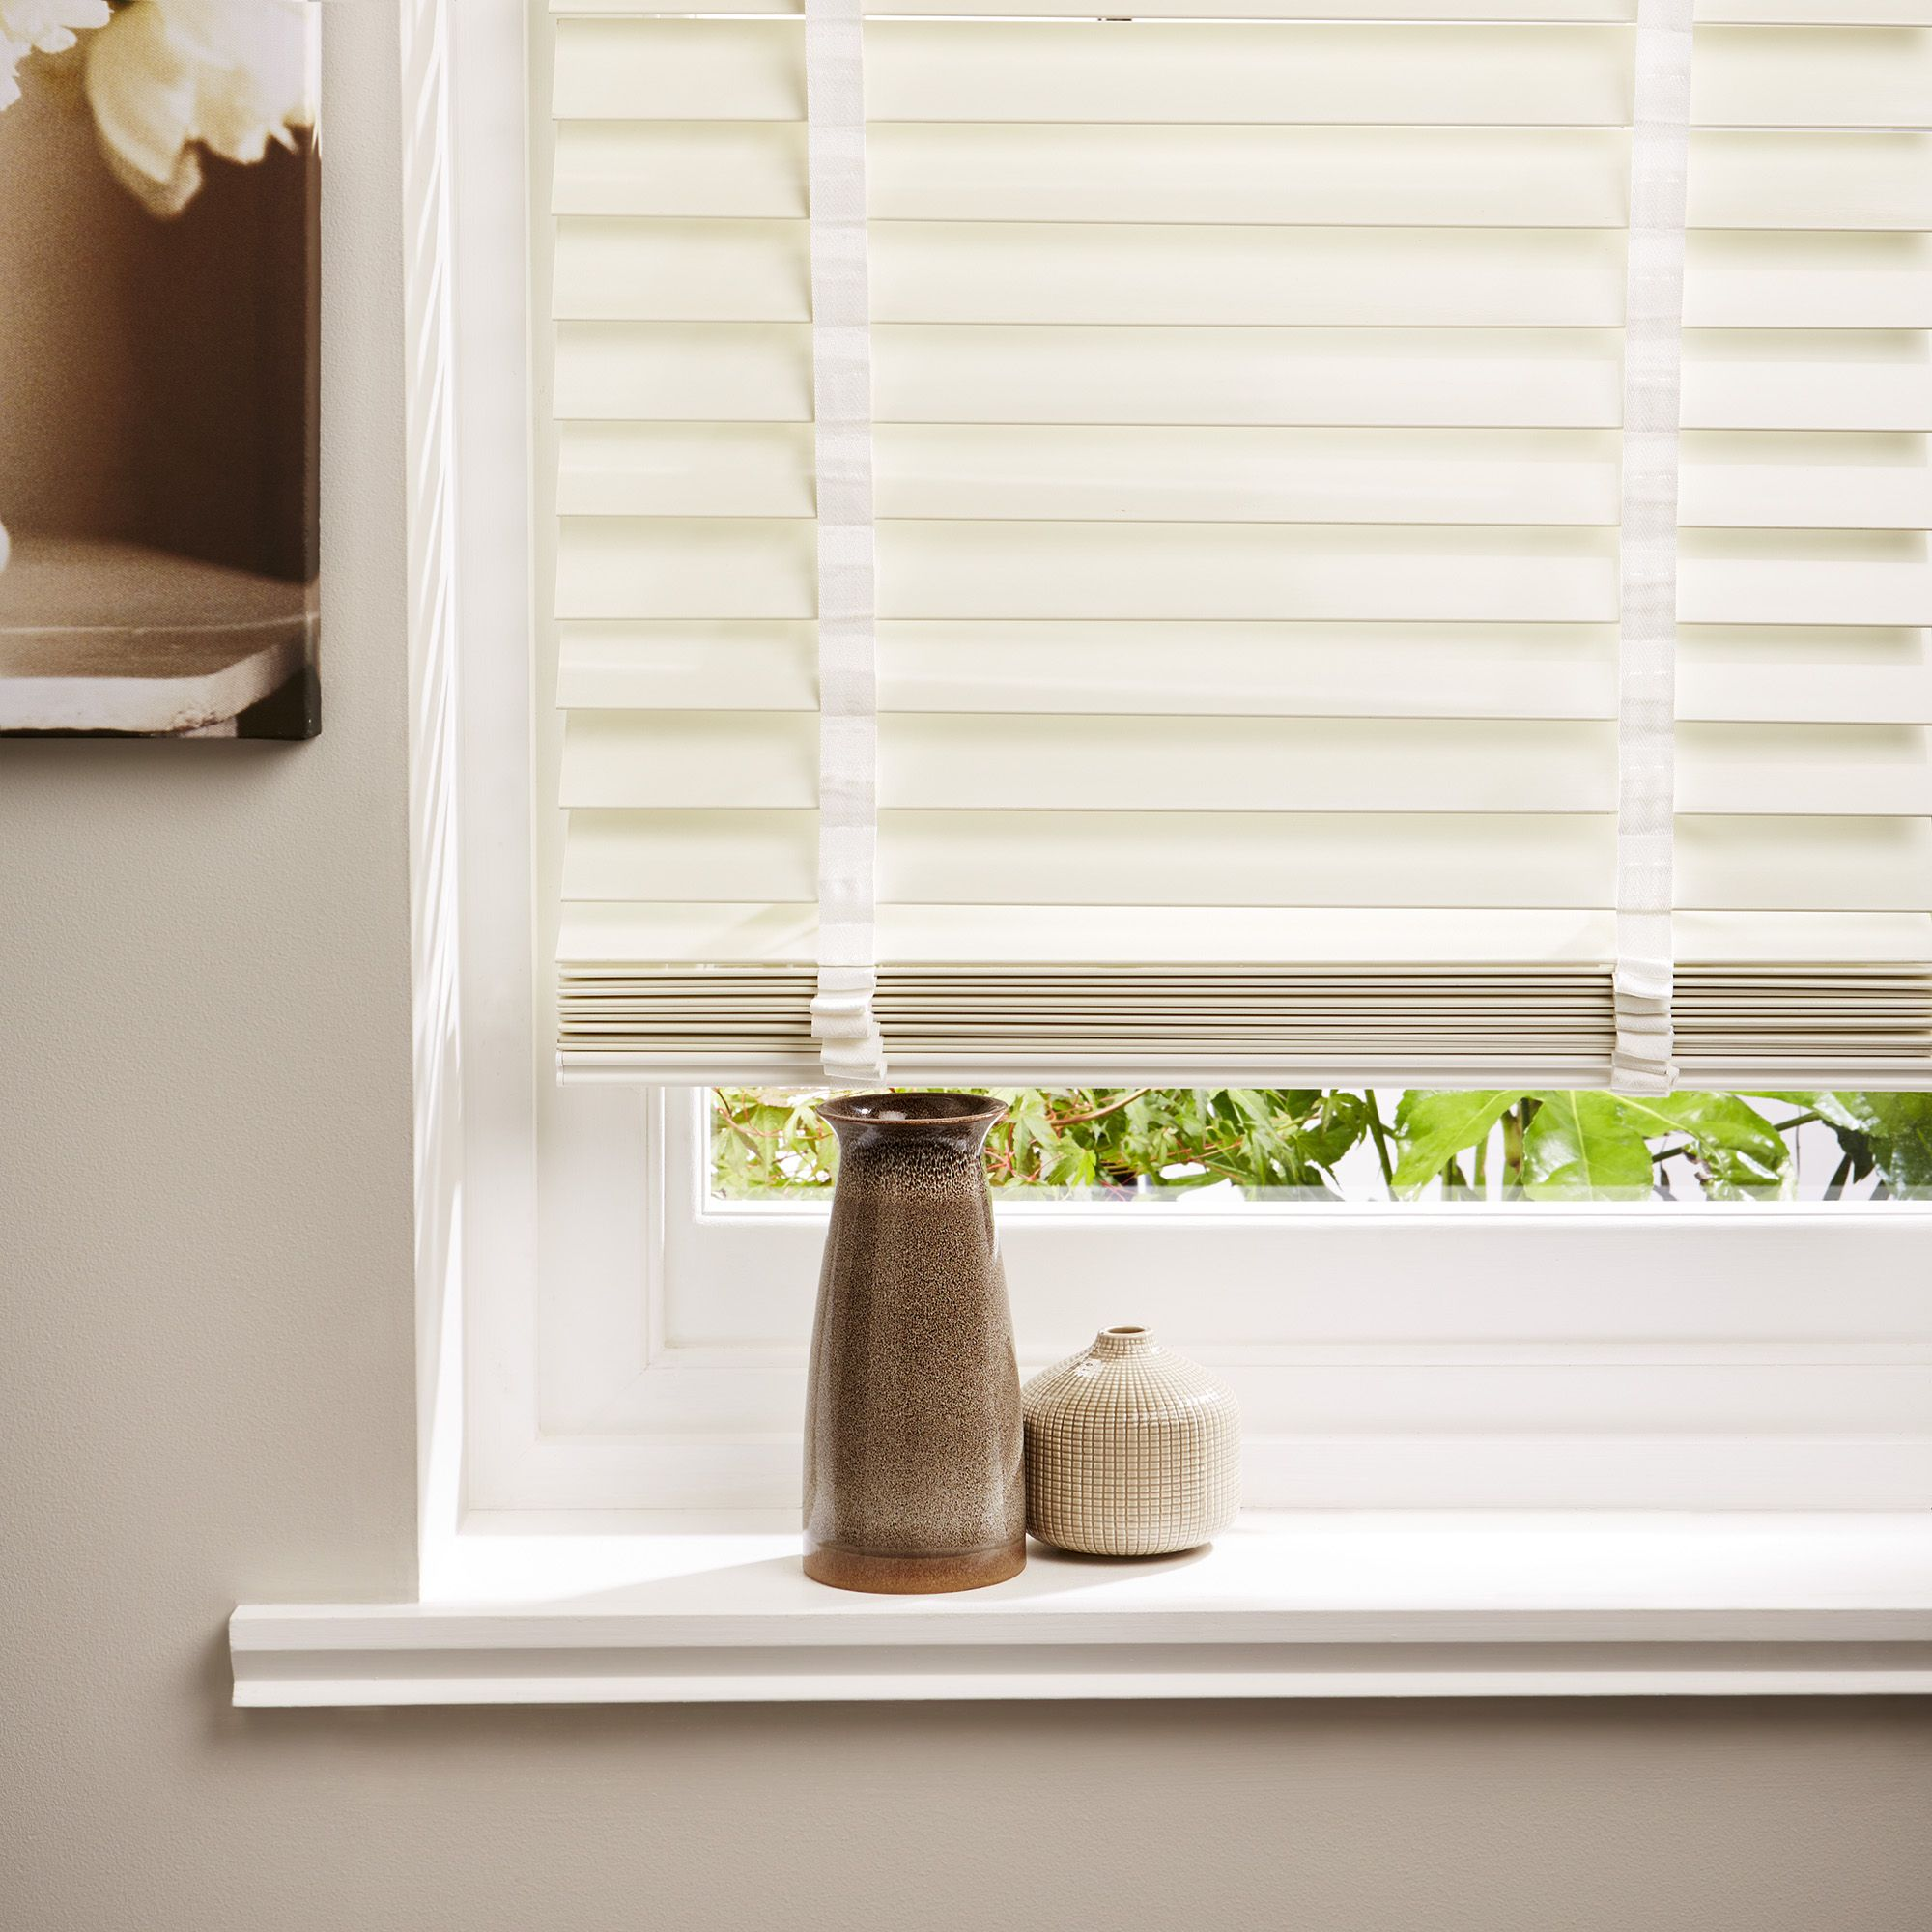 ideas windows blackout for in blind window roller grey shower blinds treatments linen bathroom india